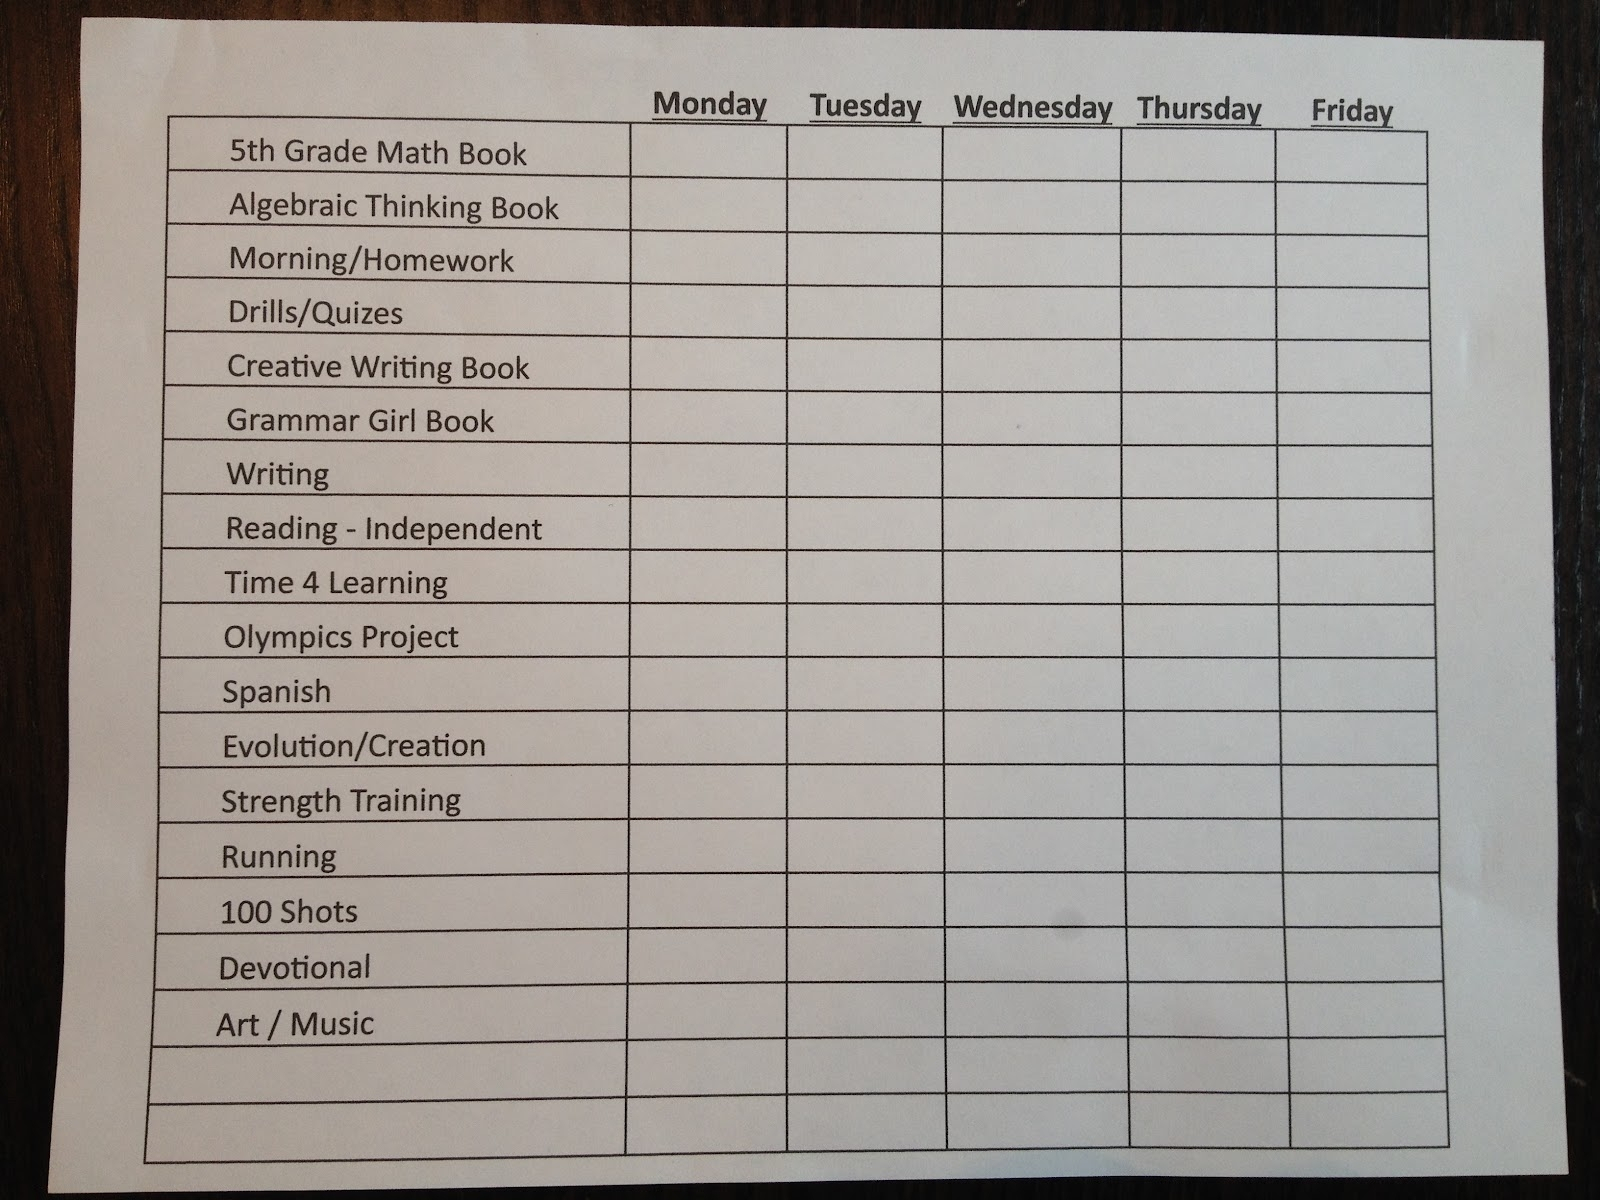 Schedule For The Day In 15 Min Increments | Ten Free with regard to Daily Calendar With 15 Minute Time Slots